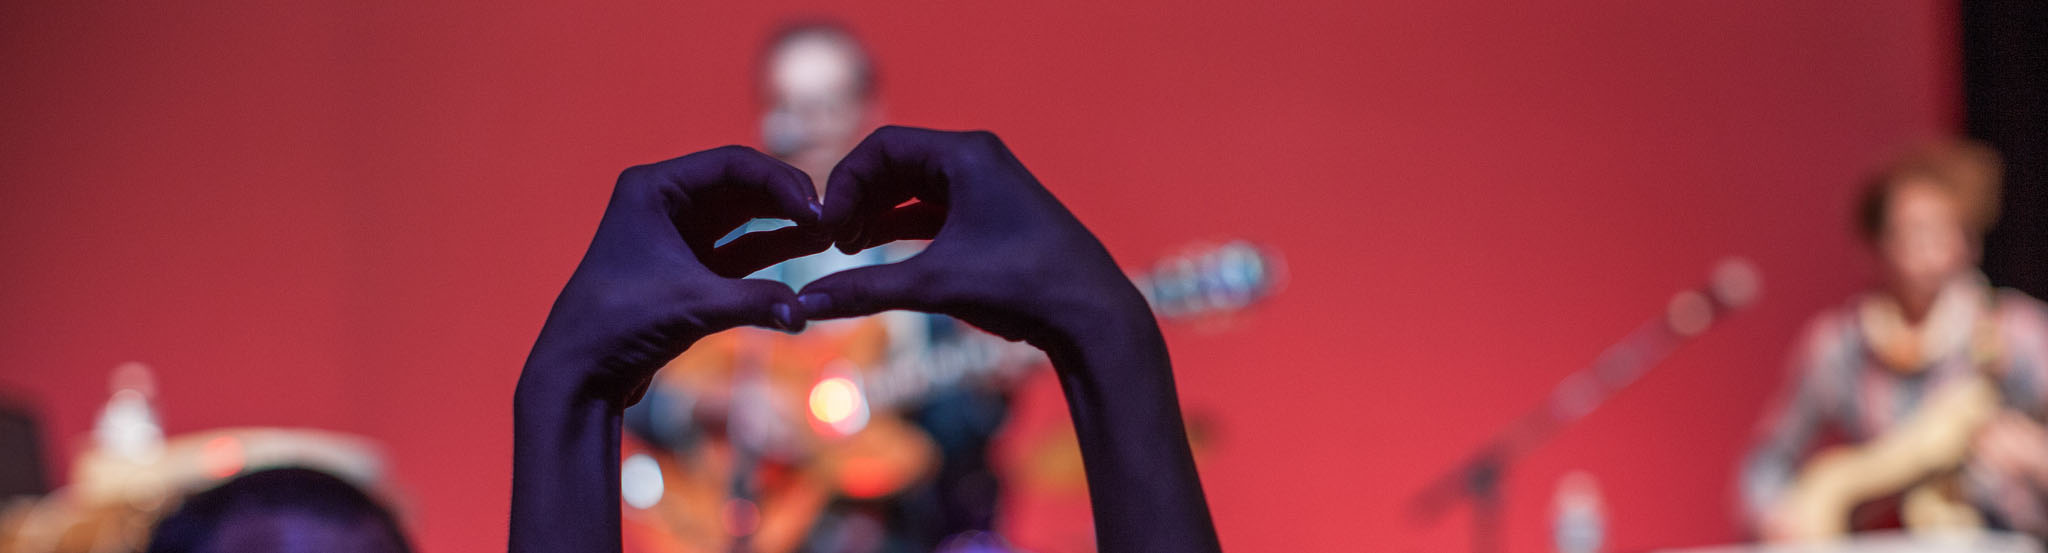 Performers on a stage in the background. Hands making the shape of a heart in the foreground.